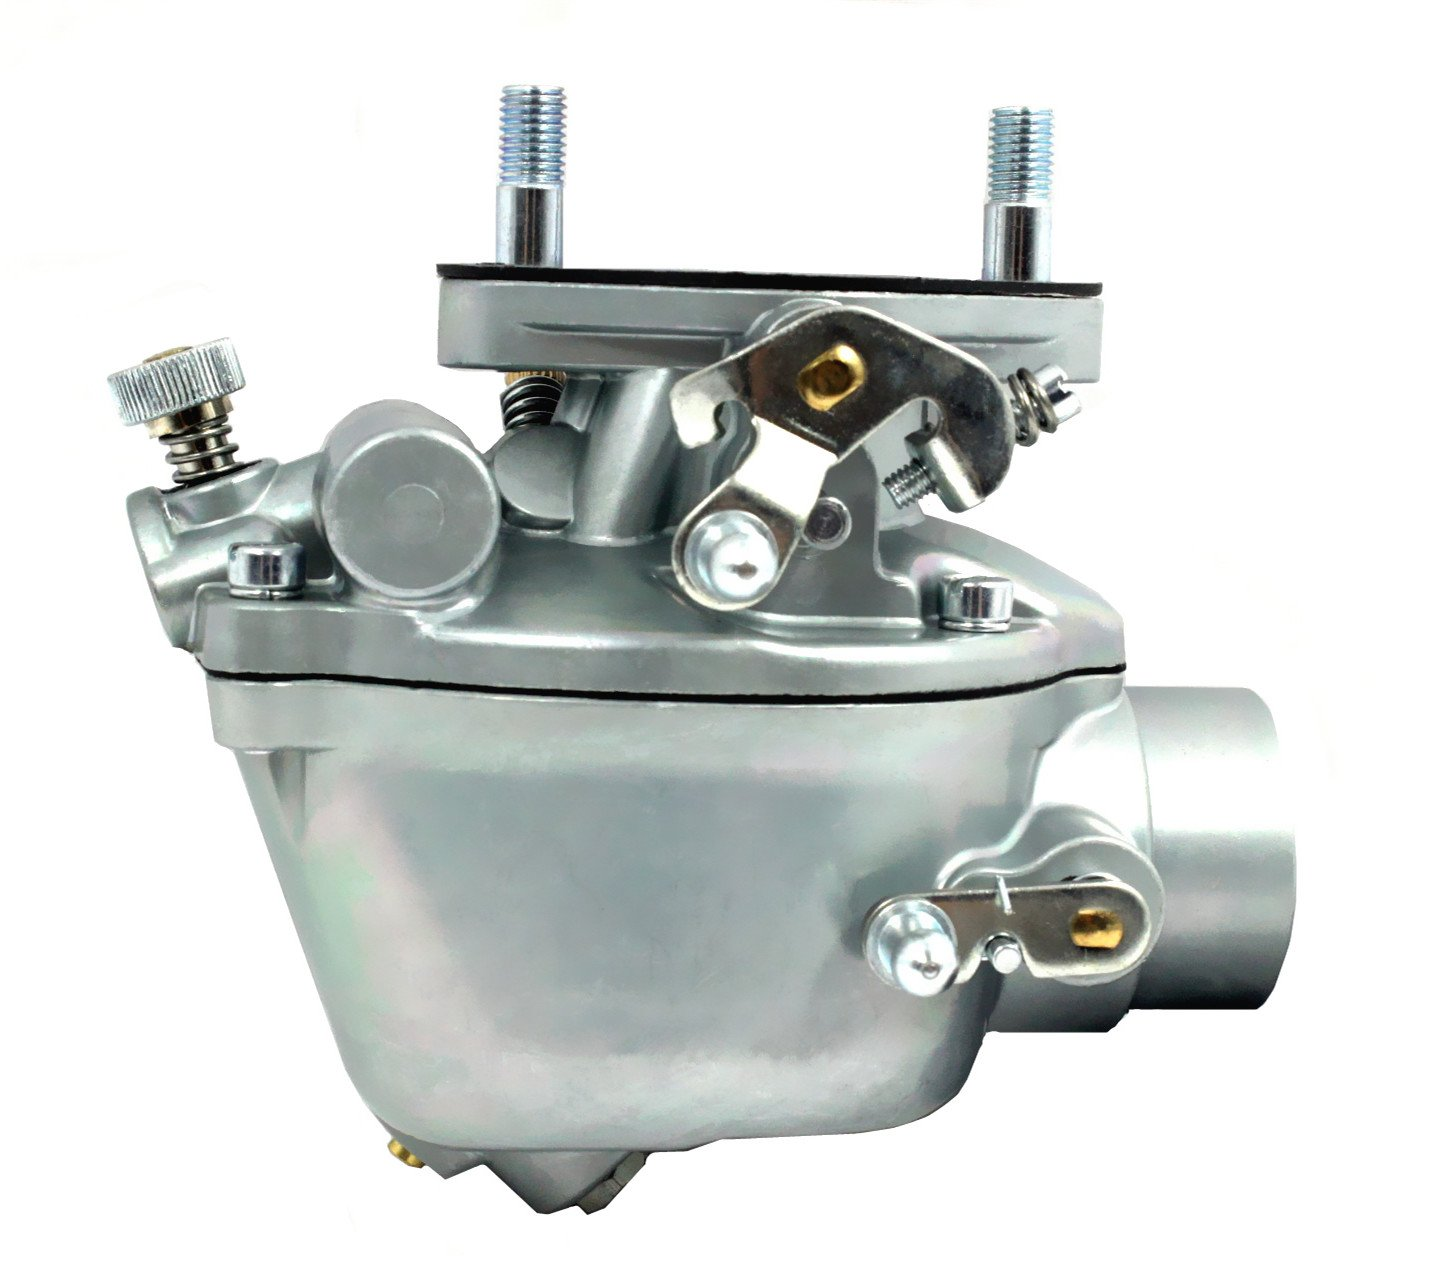 Low Cost Lelecar New Carburetor For Marvel Schebler Ford Zenith 8n 2000 Tractor 9n 2n Tsx33 Tsx241a